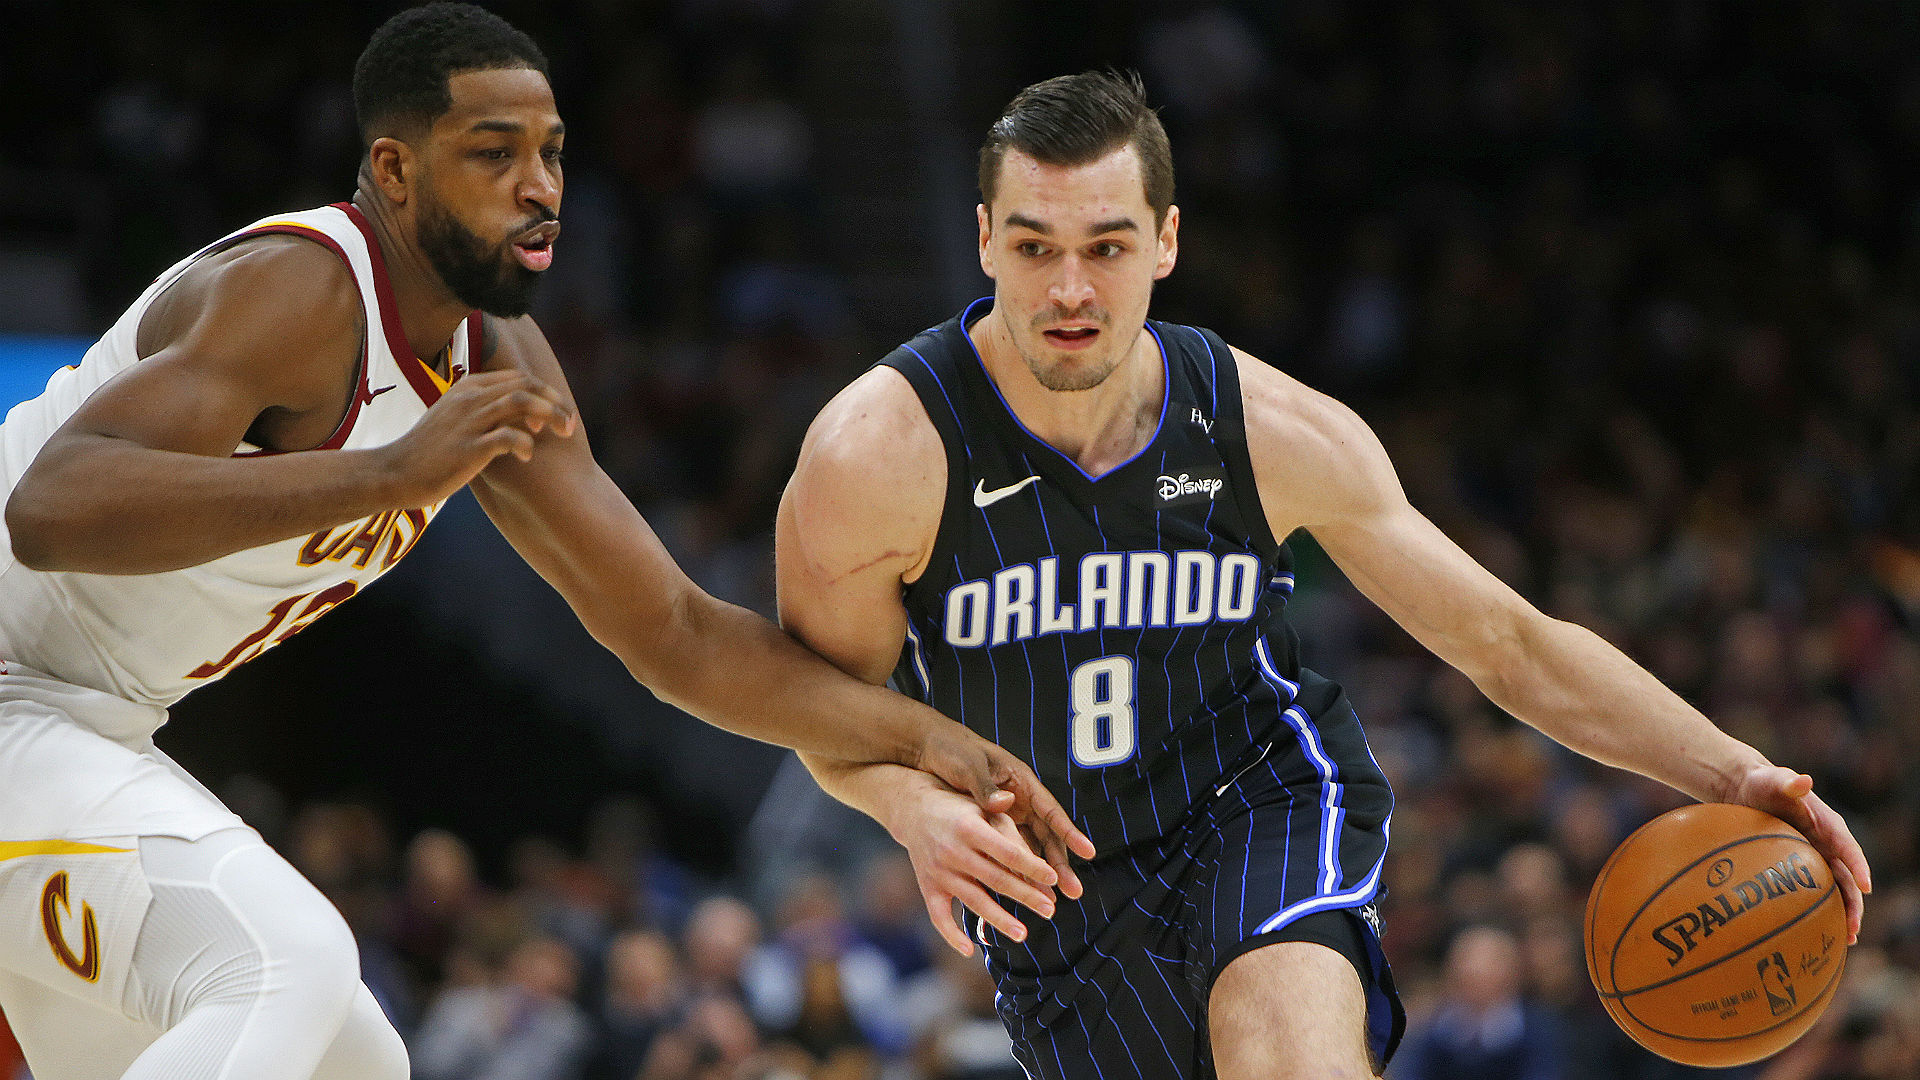 Mario Hezonja agrees to sign with New York Knicks